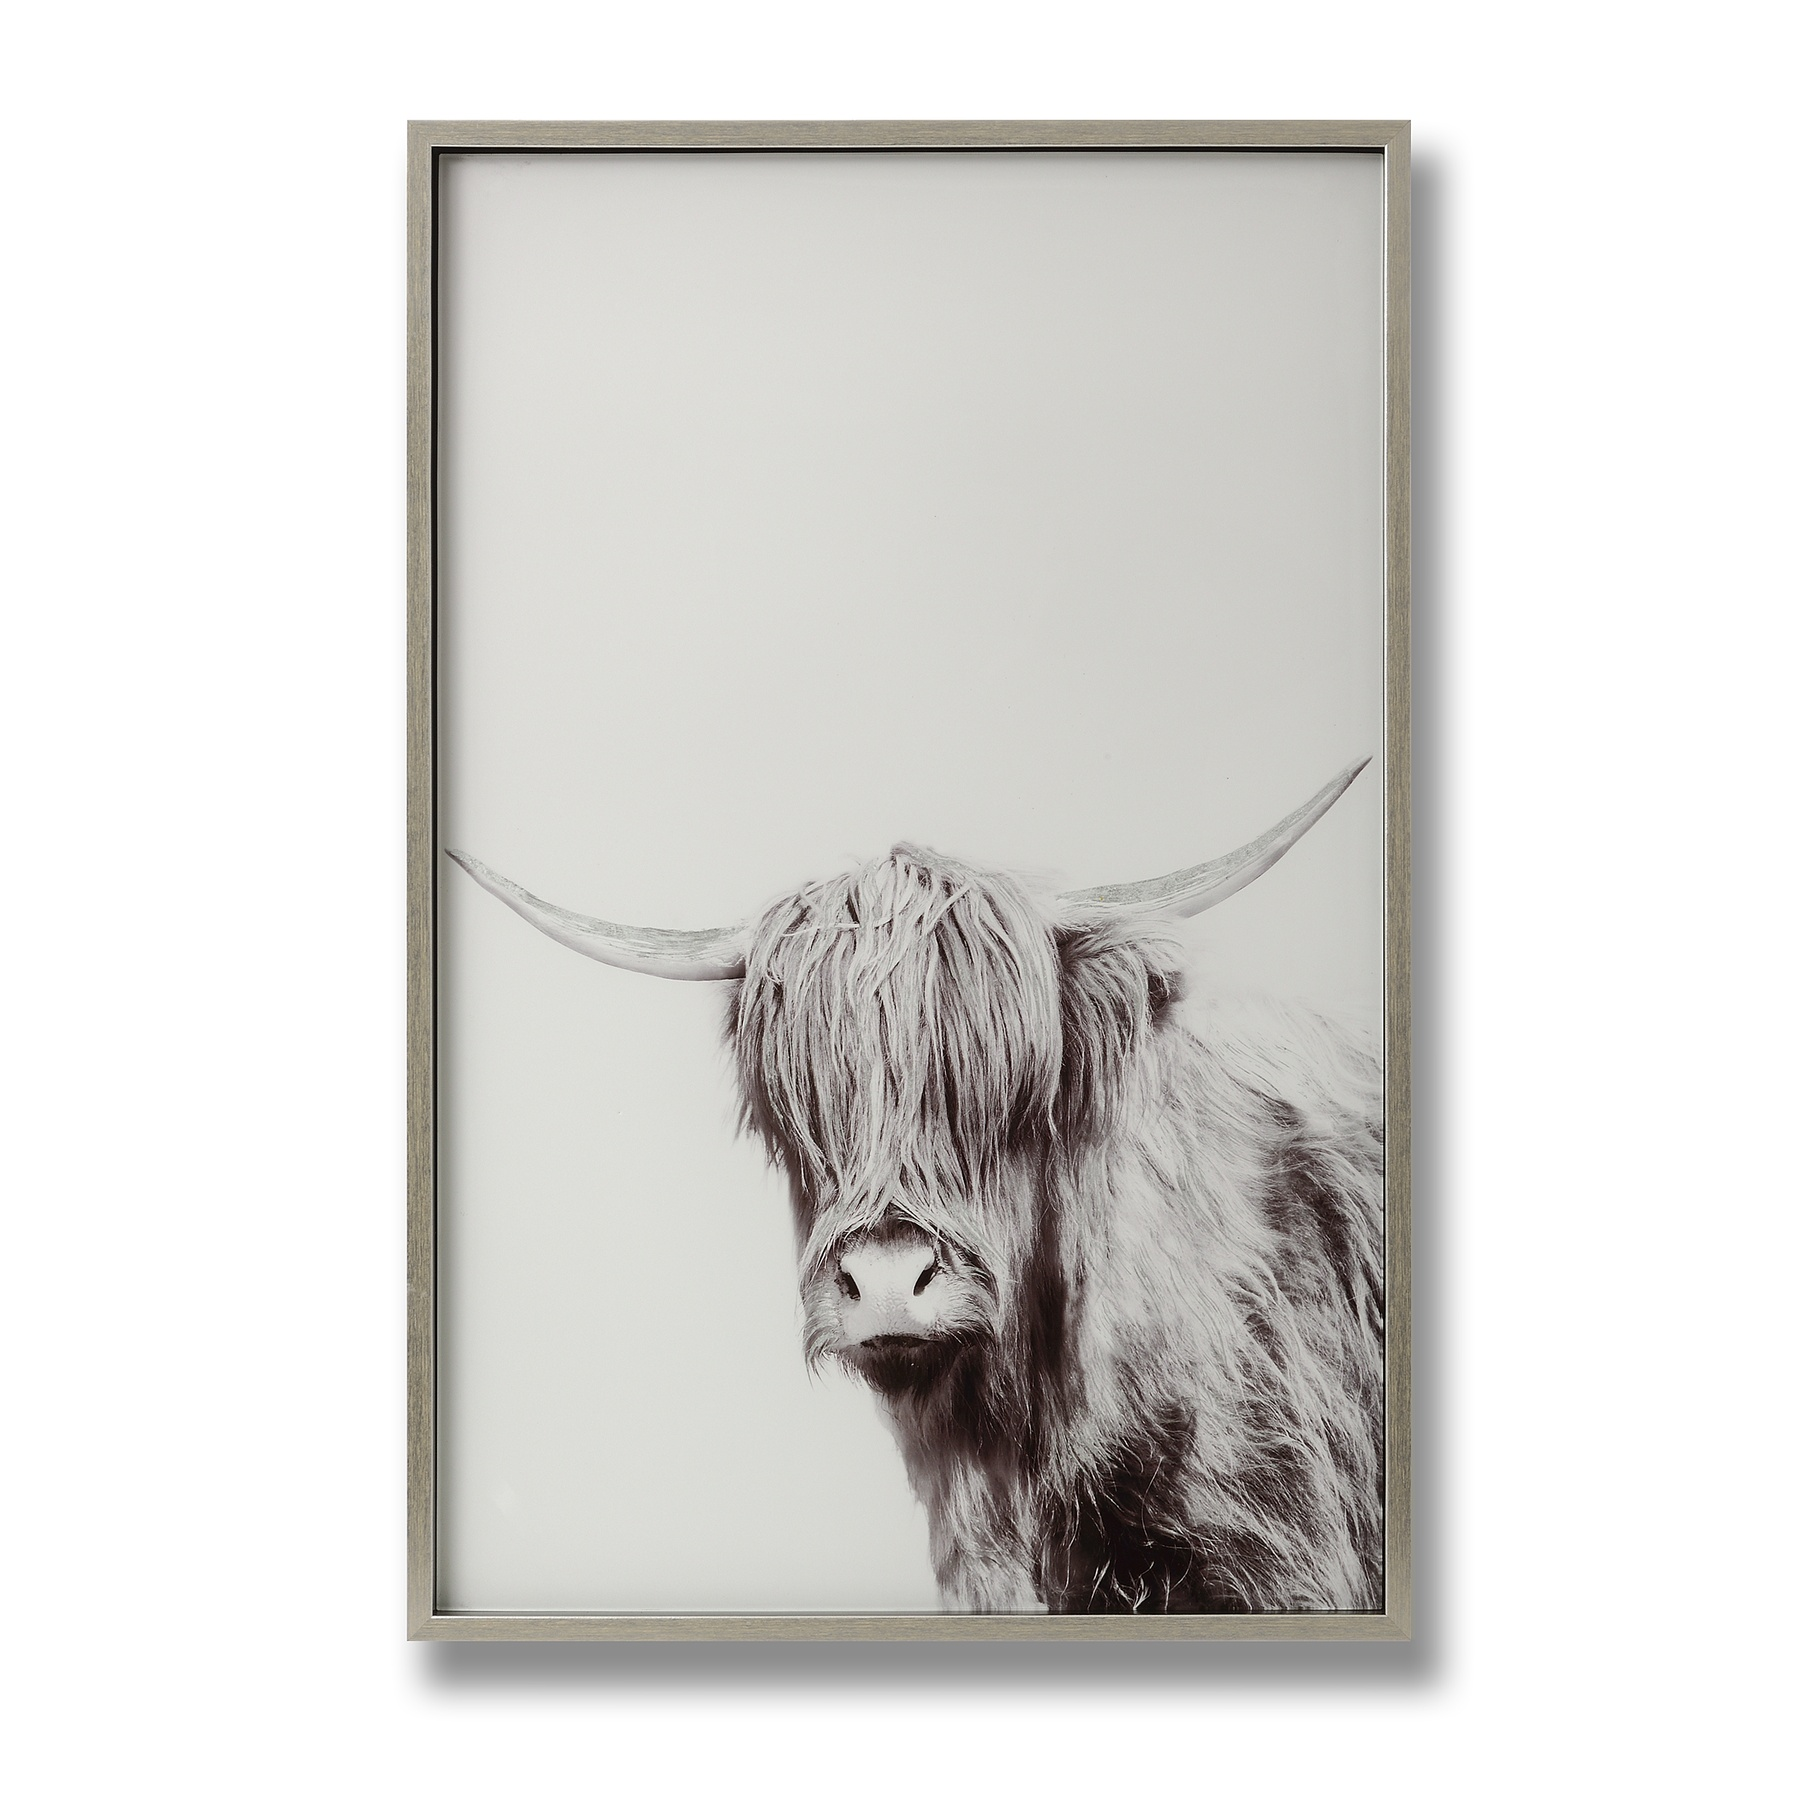 Highland Cow Left Facing Glass Image with Silver Frame - Image 1